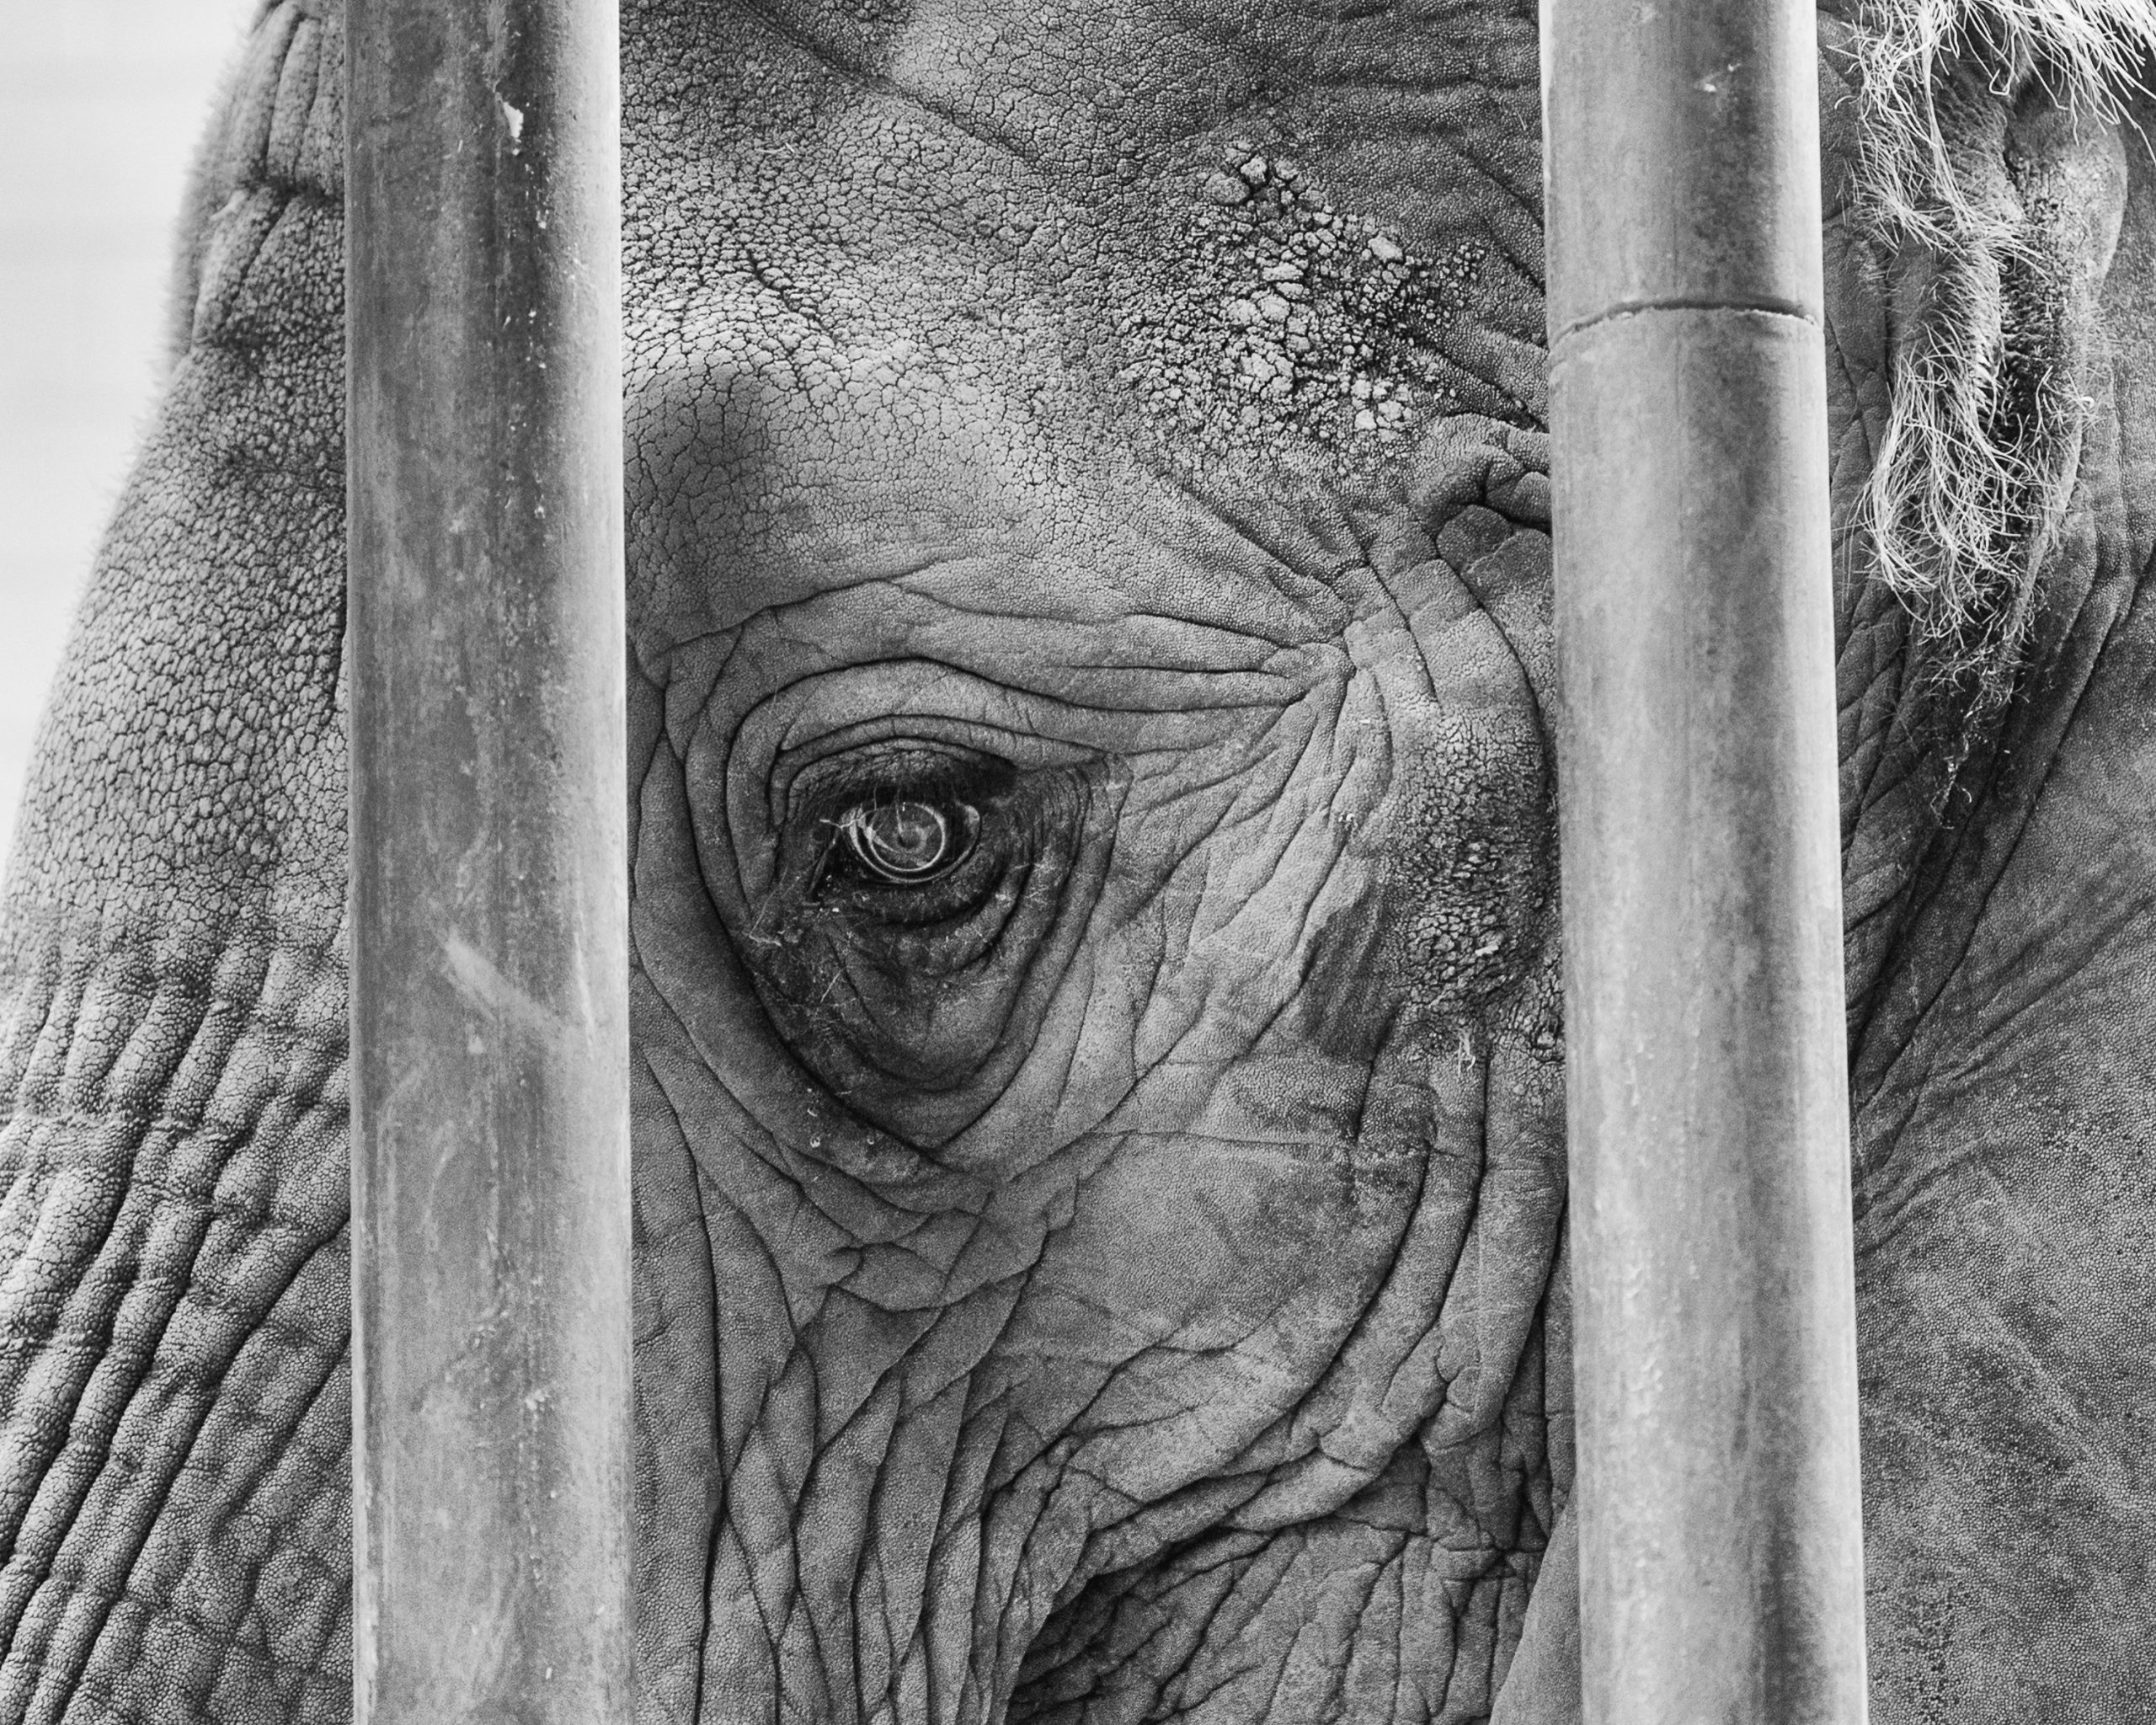 elephant in zoo cage